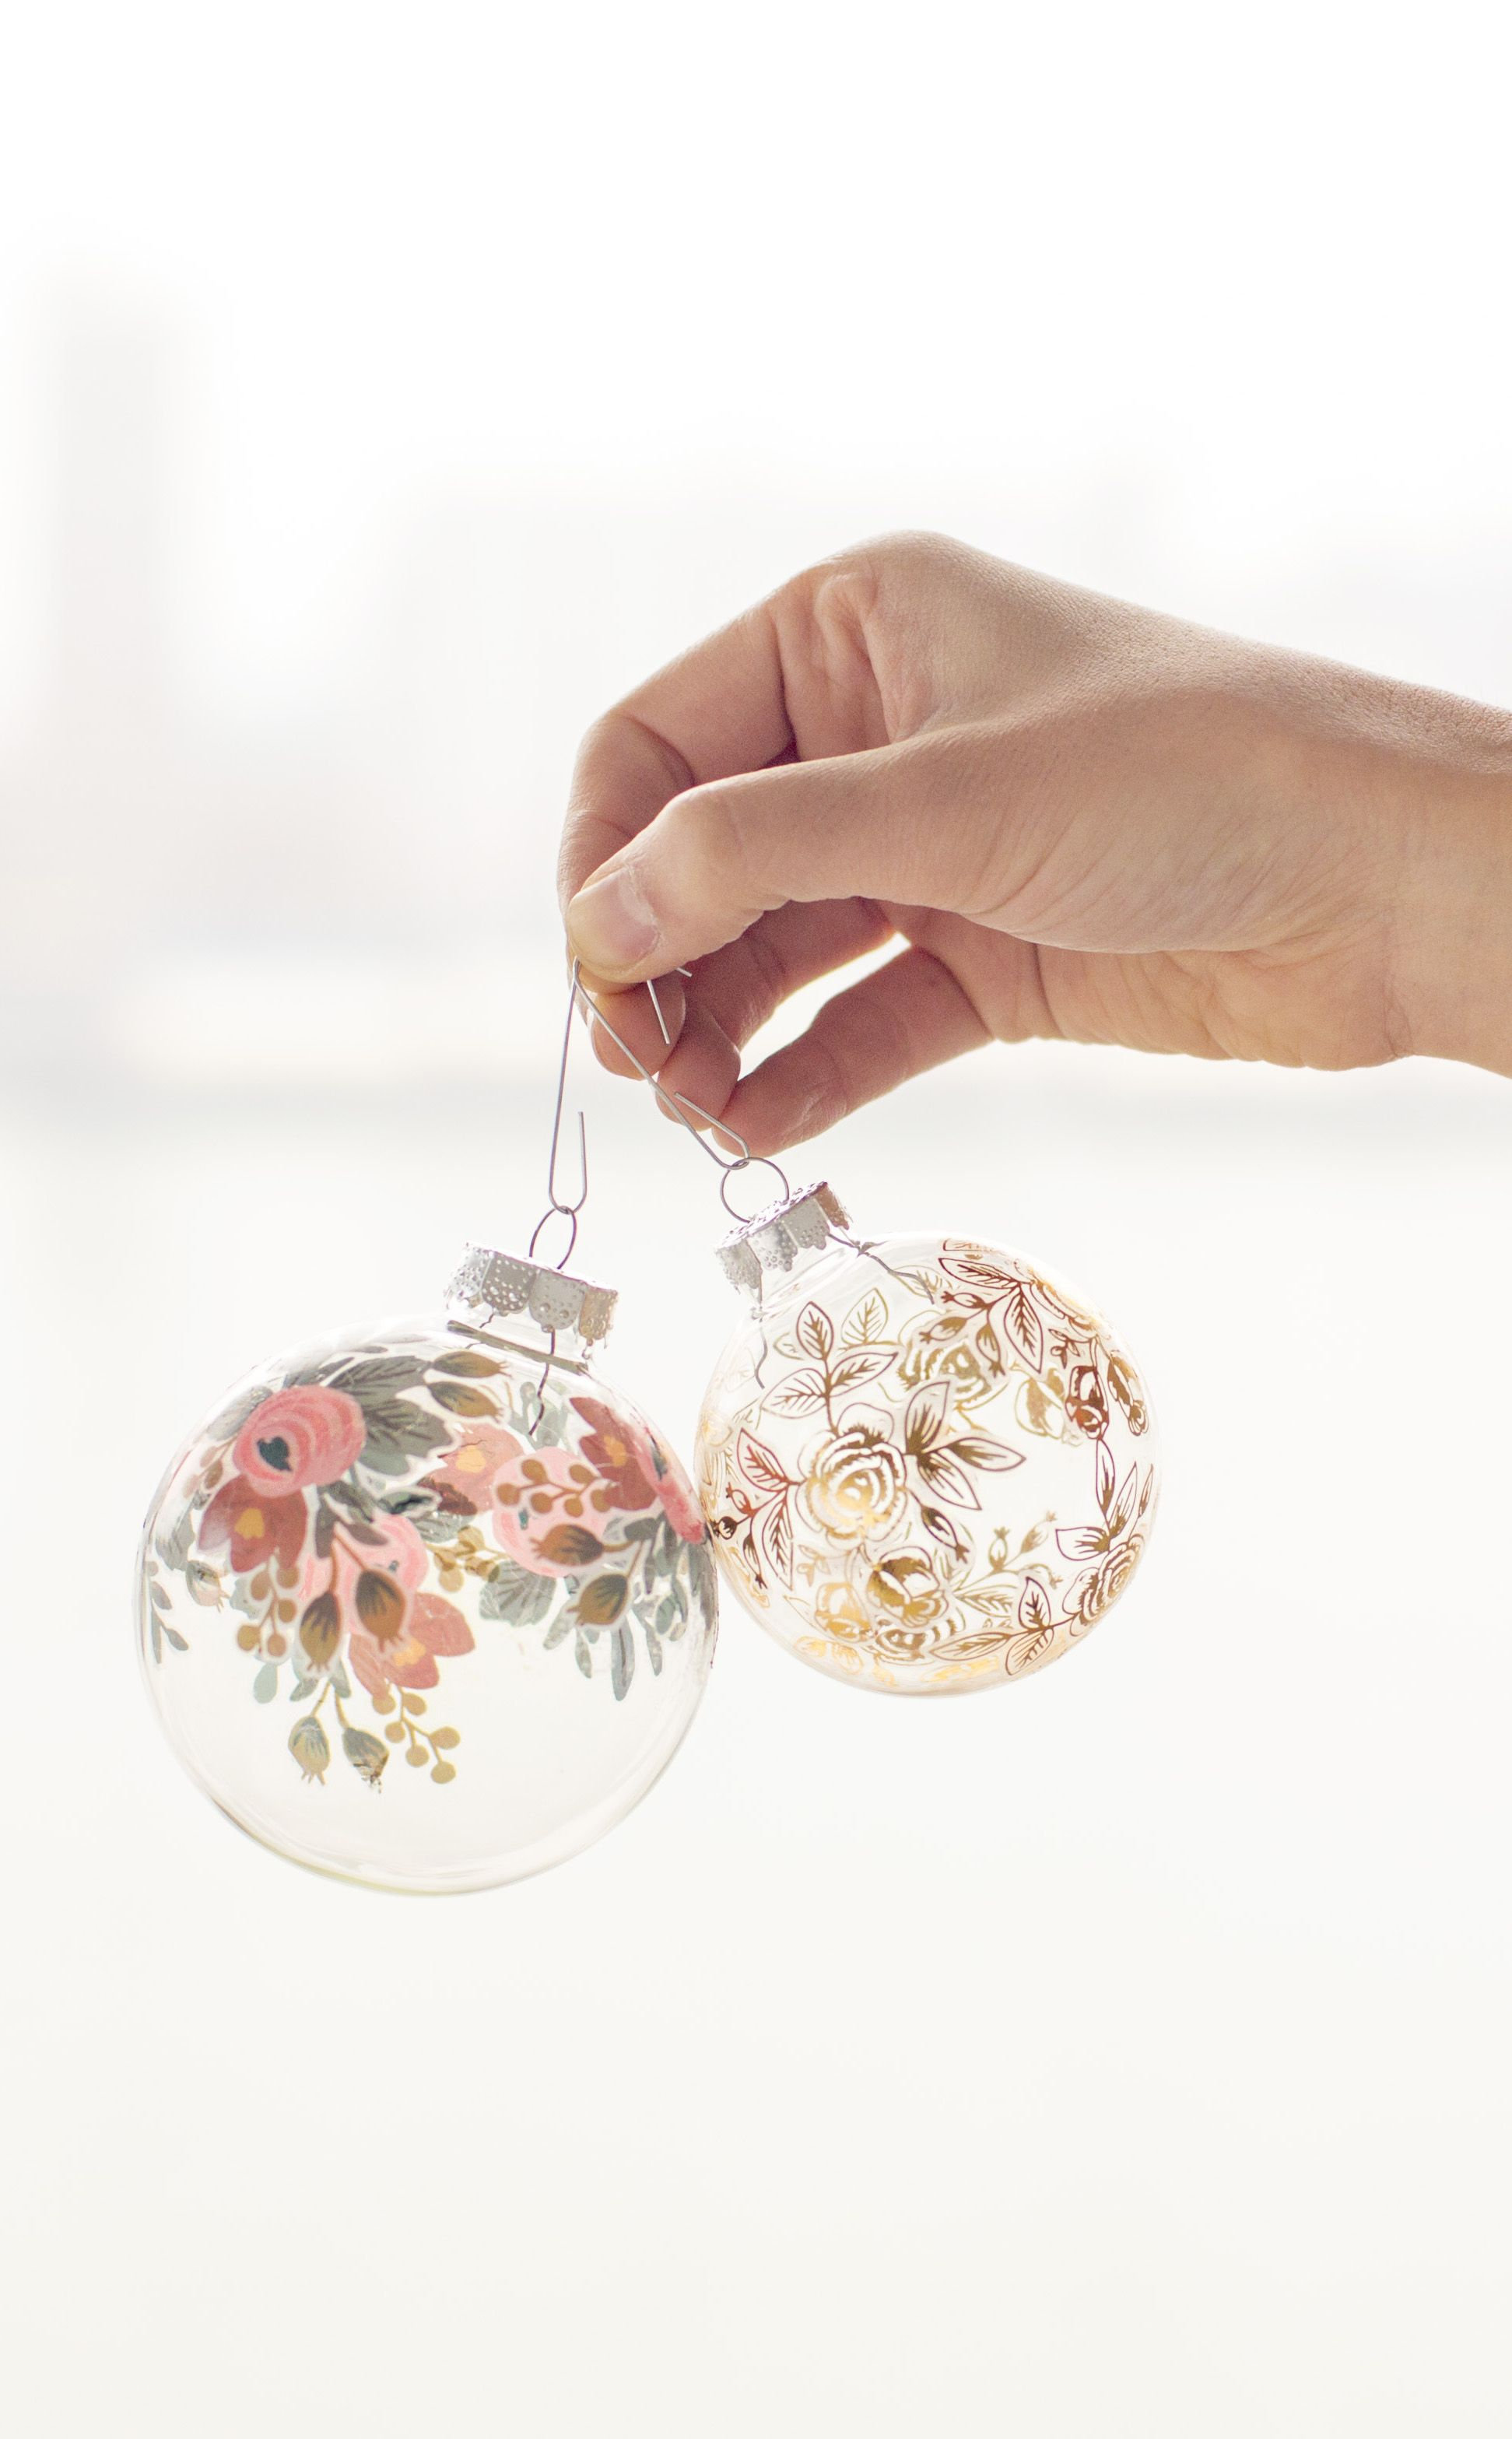 Ice cycle ornaments - Diy Tattly Ornaments Designs By Rifle Paper Co